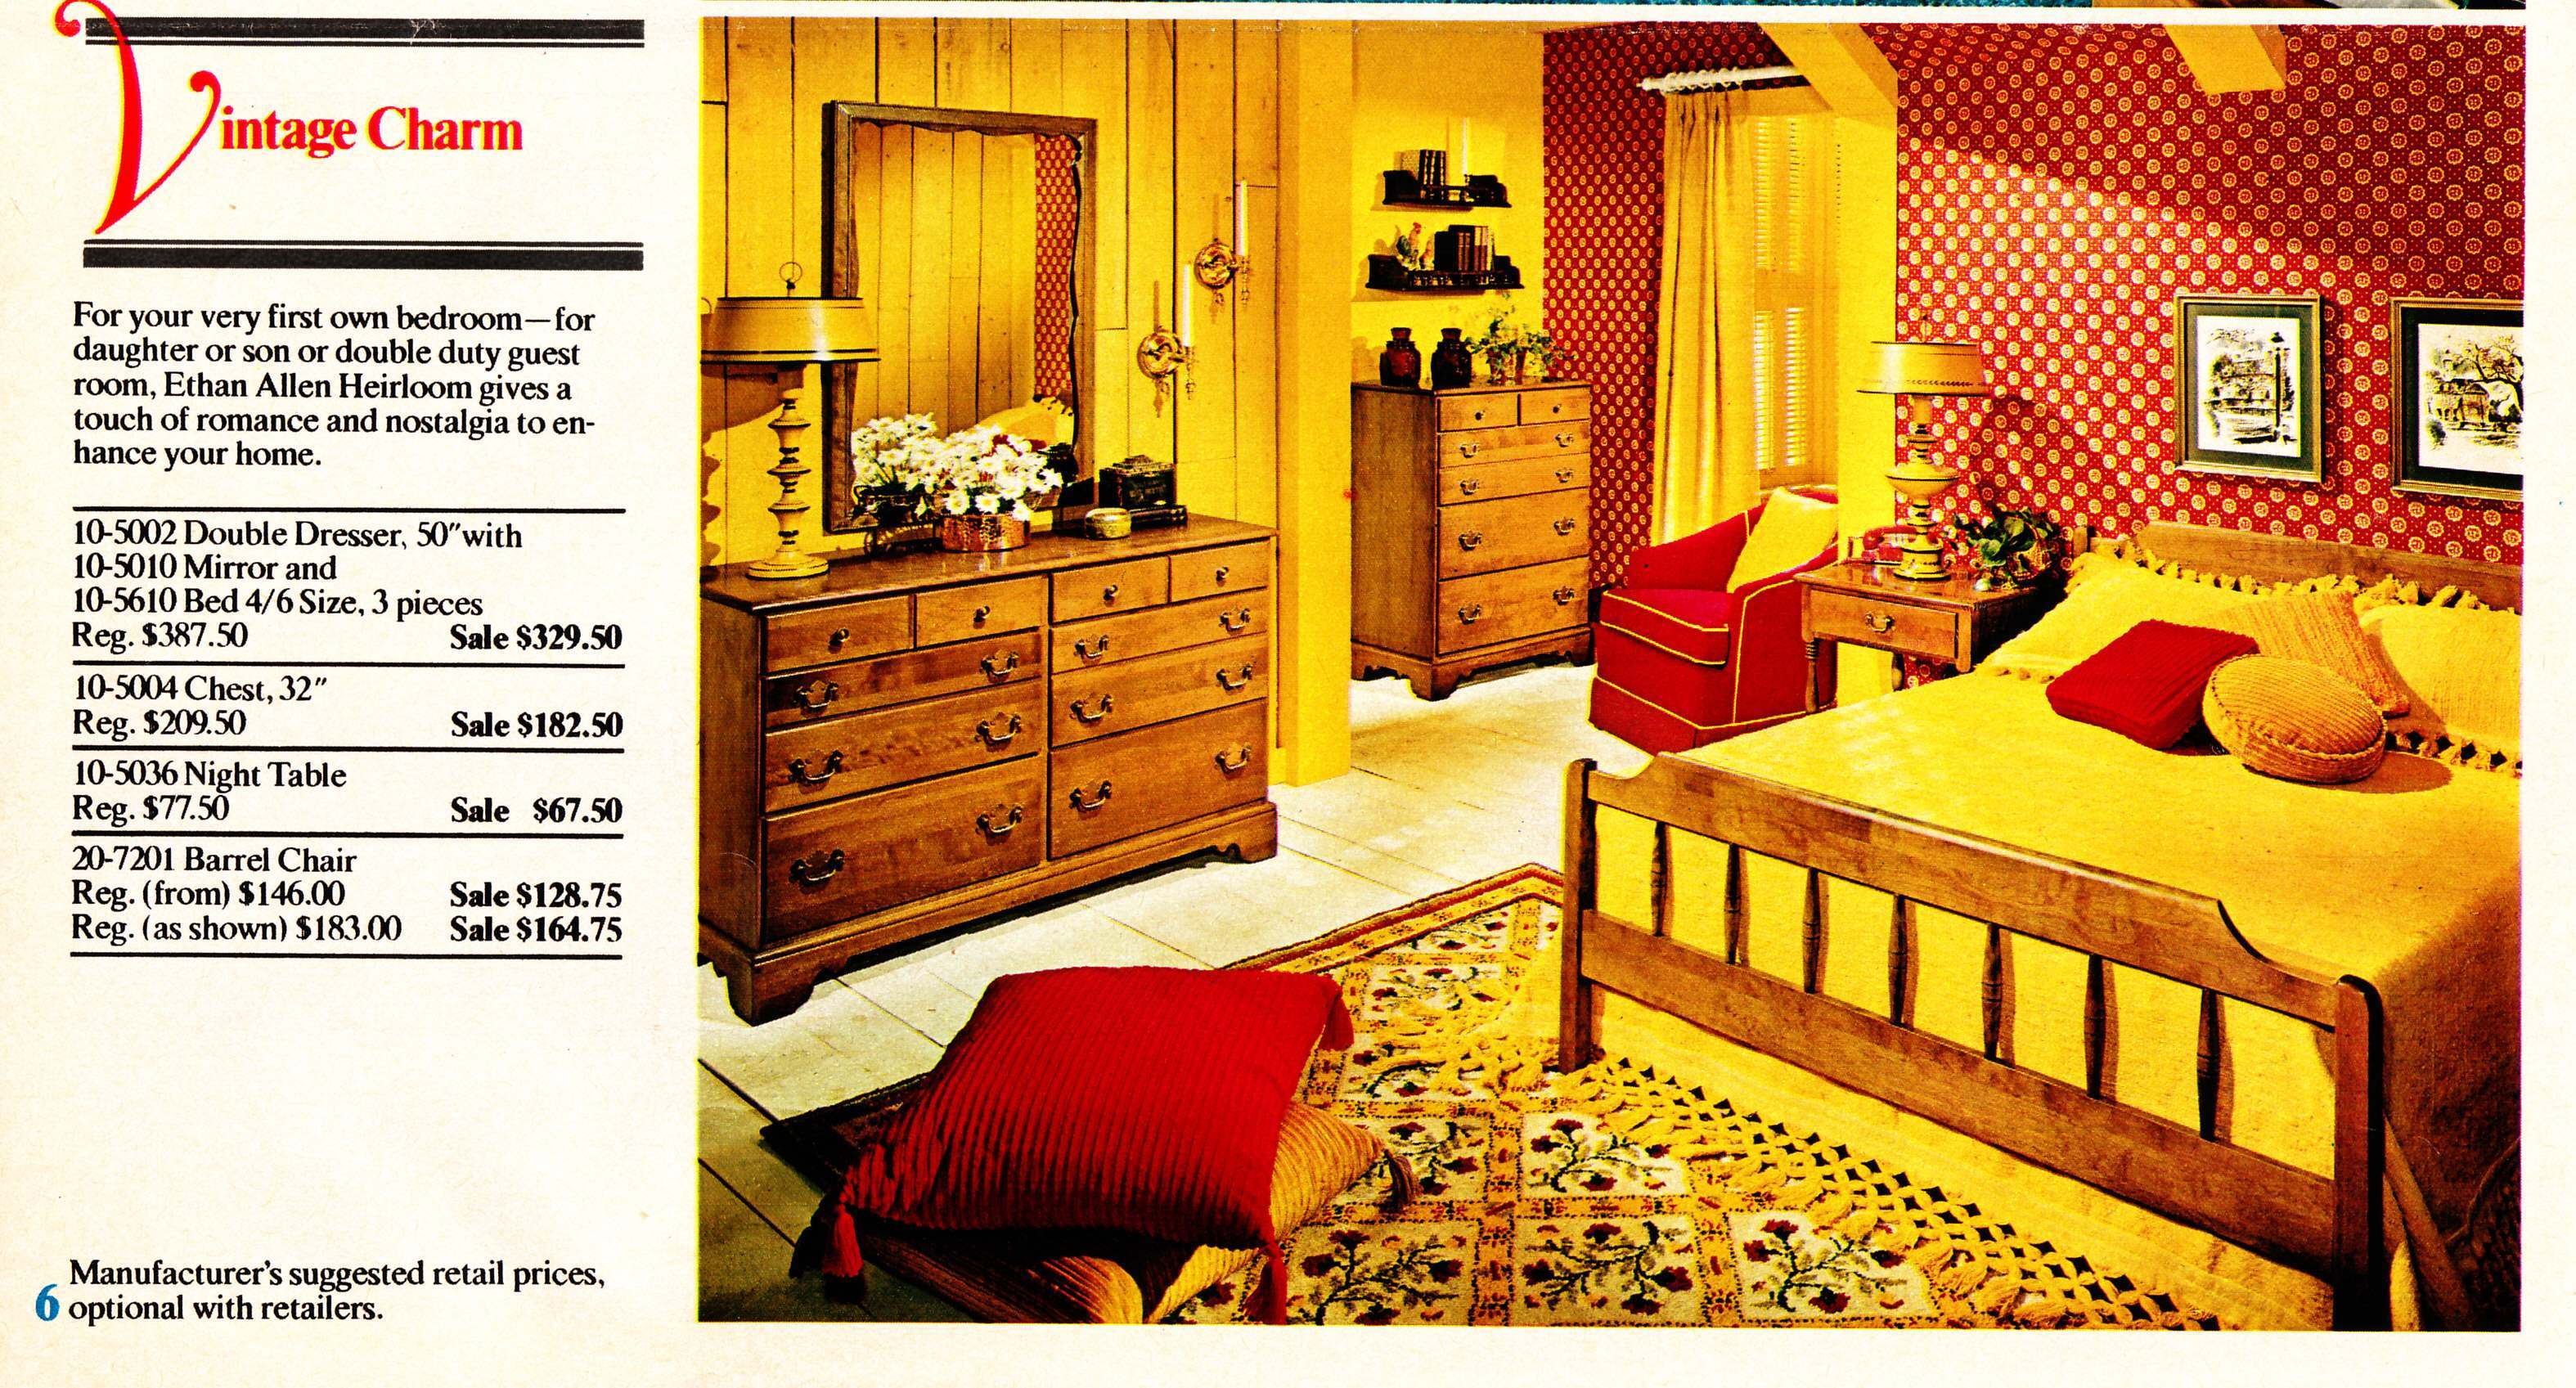 interior desecrations a 1975 home furnishing catalog 4779983235 240043ee53 o 4779985577 88262bb773 o 4779987813 4562b0f058 o 4779990275 d37b4b527b o 4779993473 da9b291357 o 4780613290 250d2e264f o